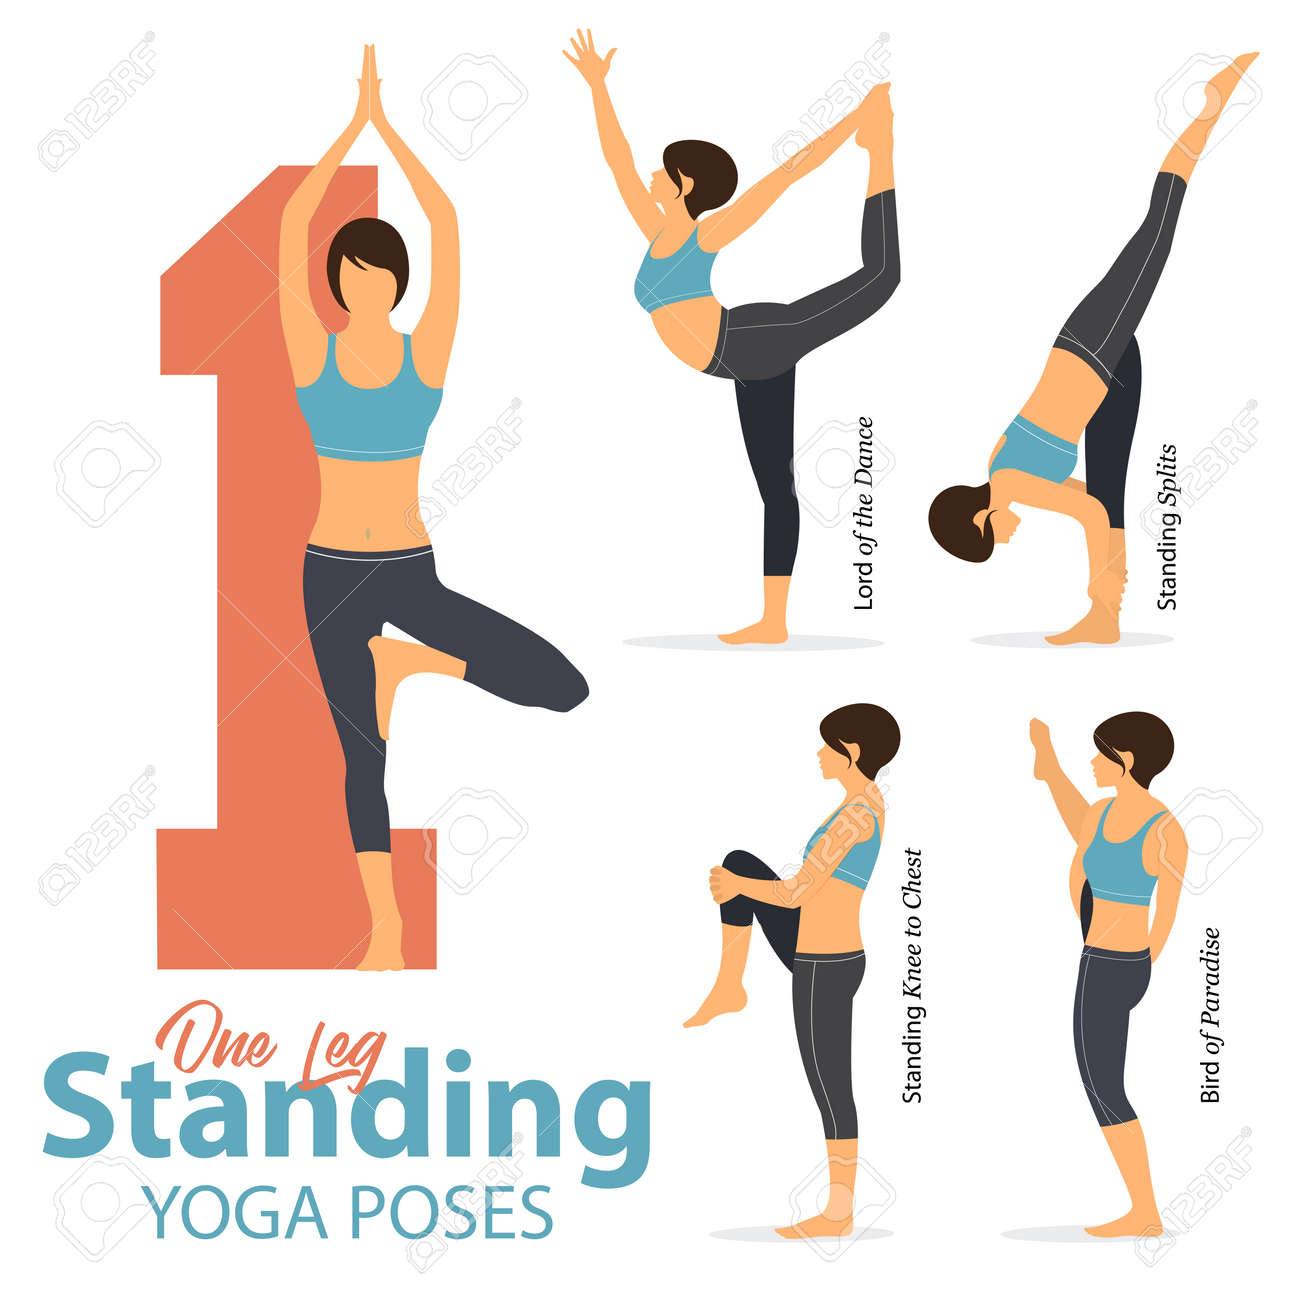 A Set Of Yoga Postures Female Figures For Infographic 5 Yoga Royalty Free Cliparts Vectors And Stock Illustration Image 94980409